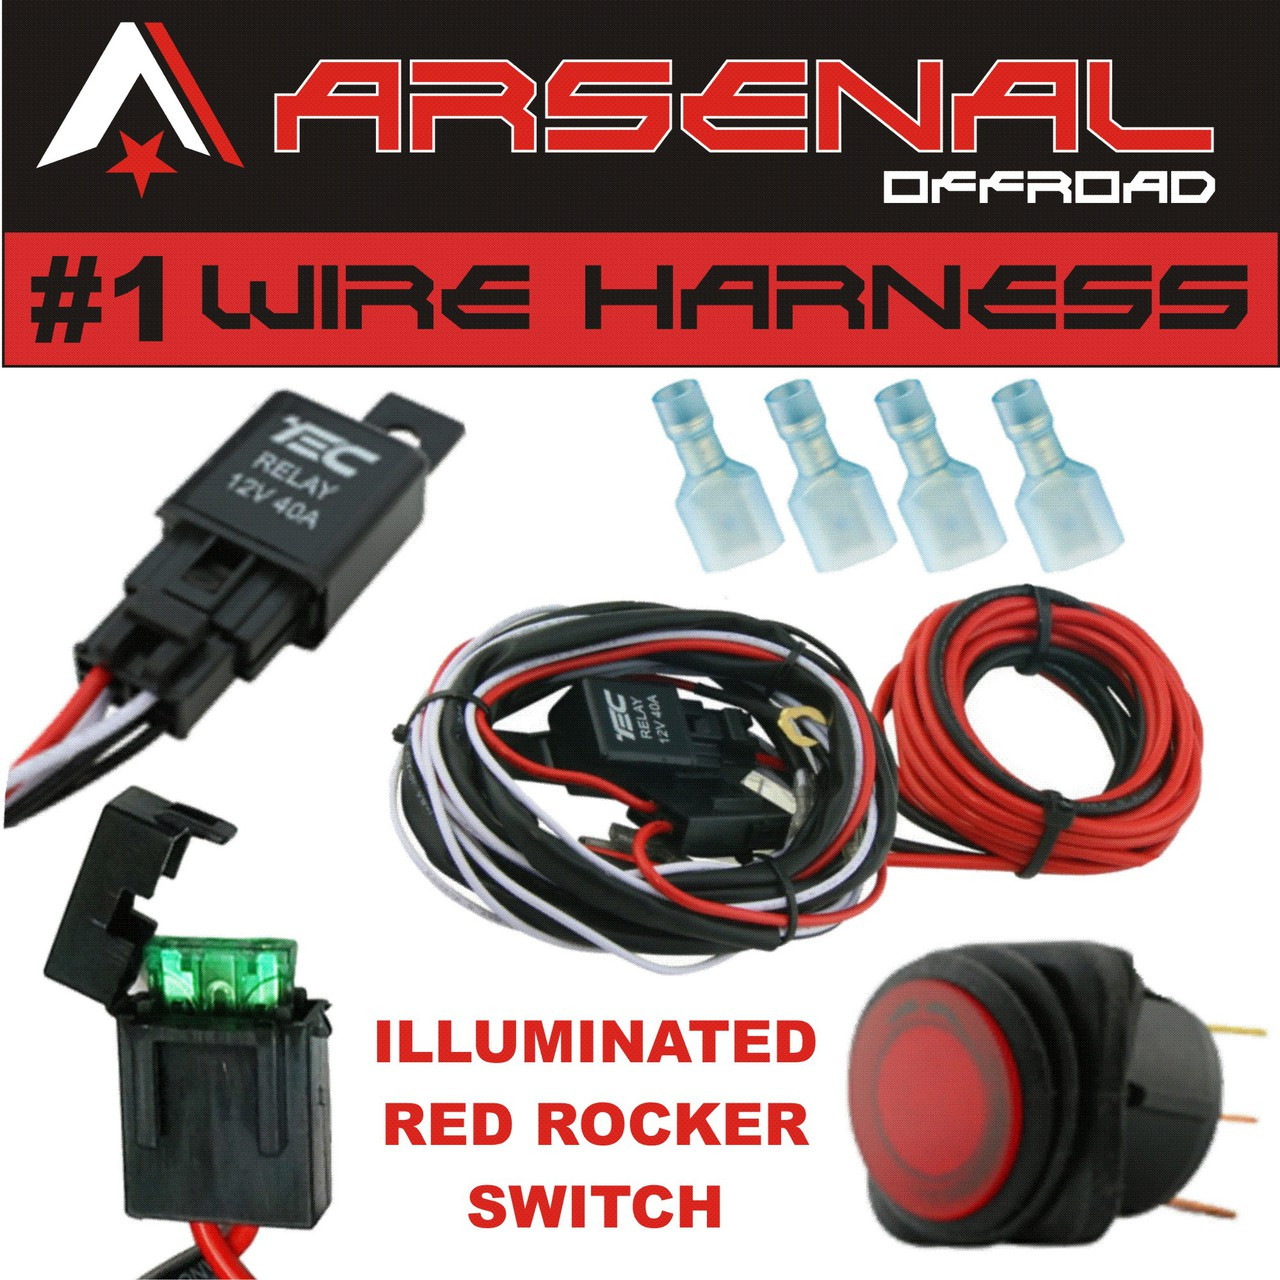 1 40 amp universal wiring harness comes with 40 relay, illuminated on off rocker switch for offroad led light bars and work lights, jeep, atv, utv,  off road switch wiring #4